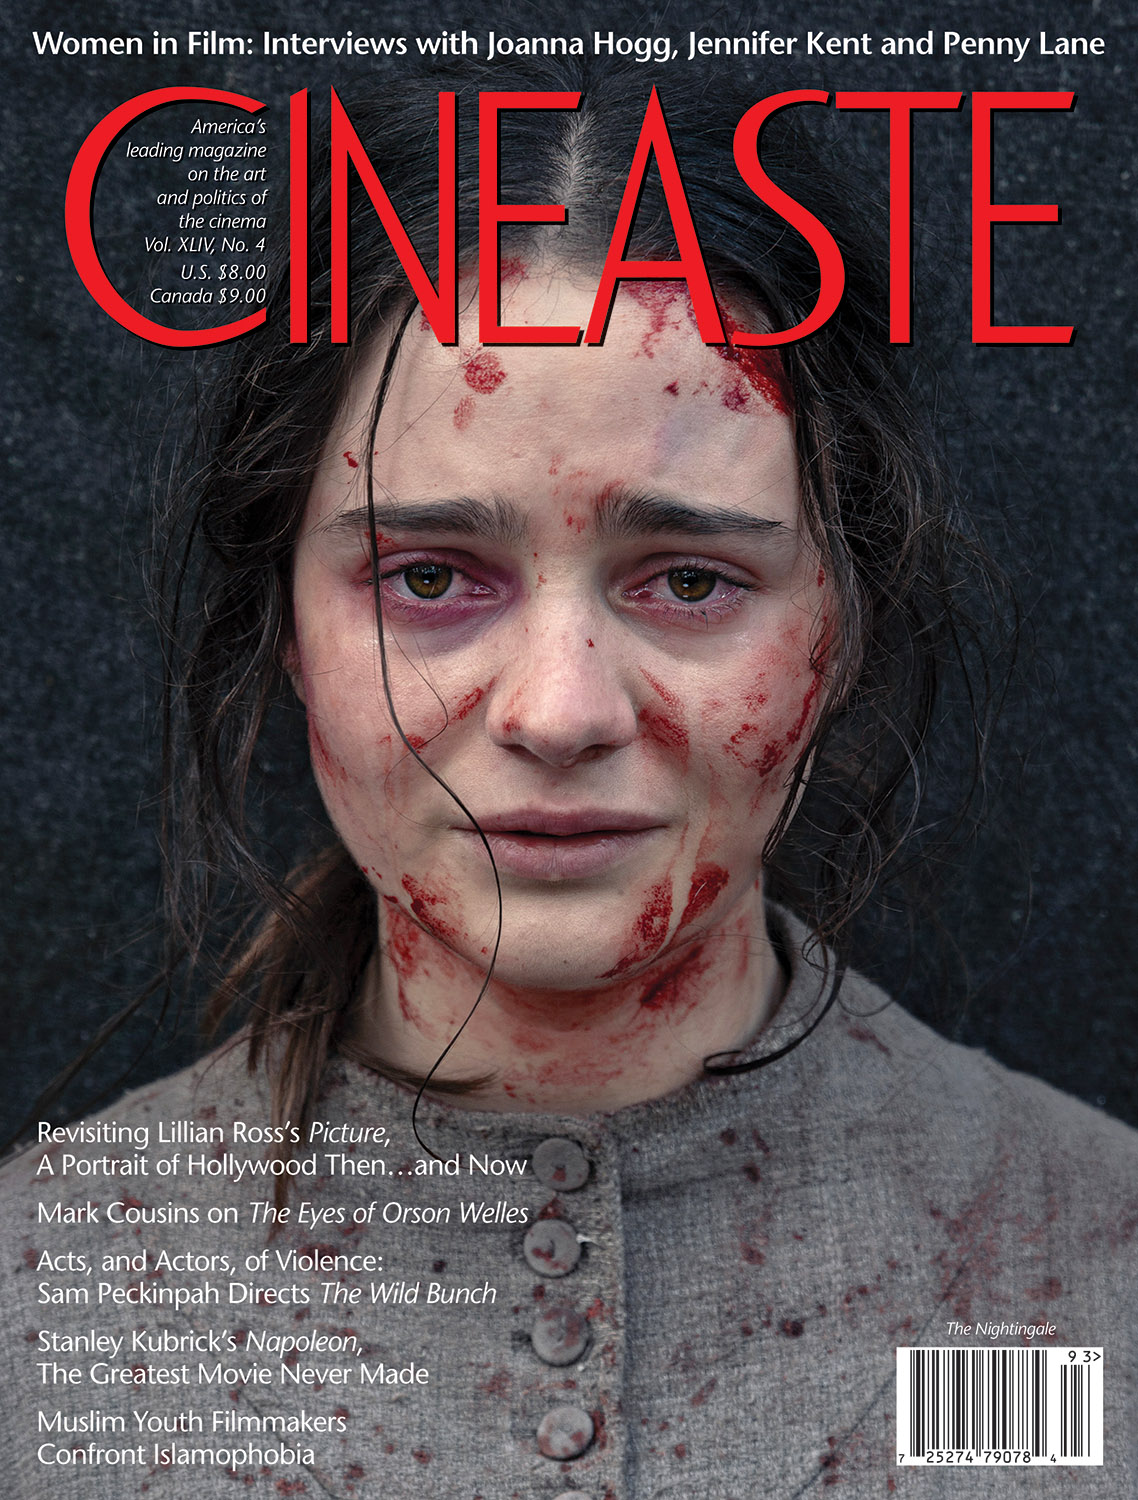 Cineaste_Cover_XLIV-4.jpg